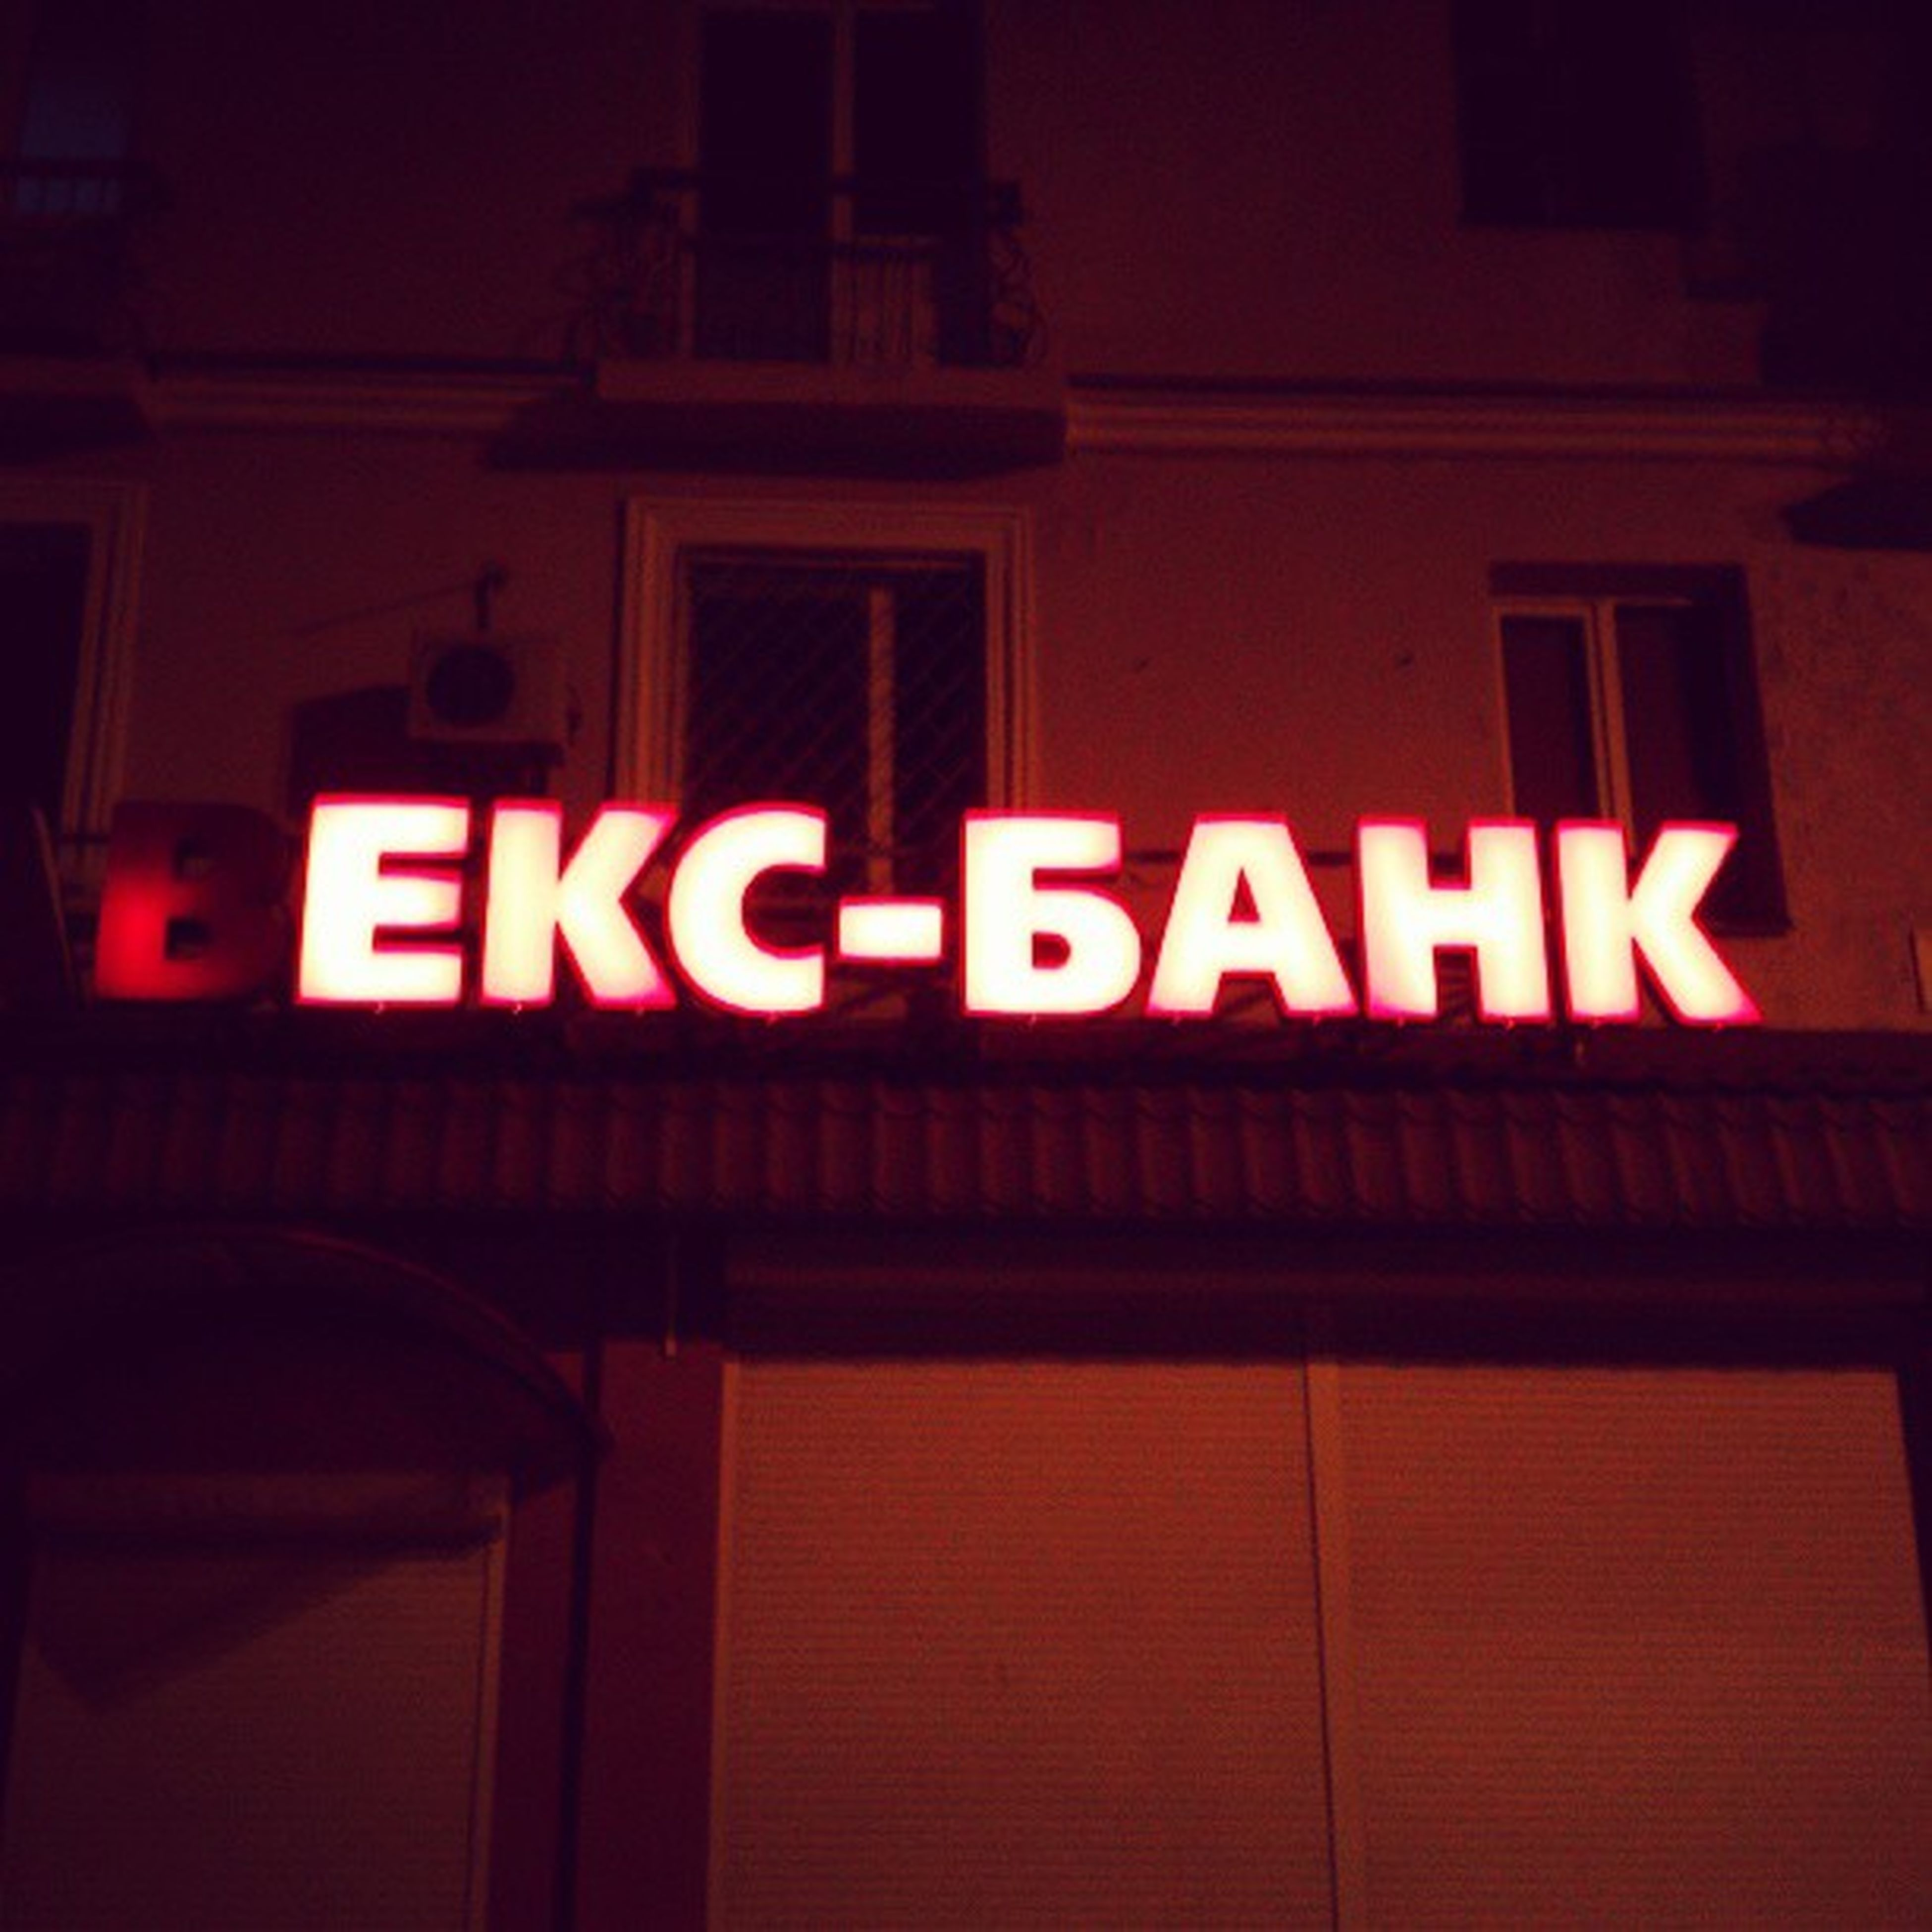 text, western script, architecture, built structure, communication, red, illuminated, building exterior, night, capital letter, non-western script, information, sign, low angle view, no people, window, indoors, information sign, wall - building feature, building